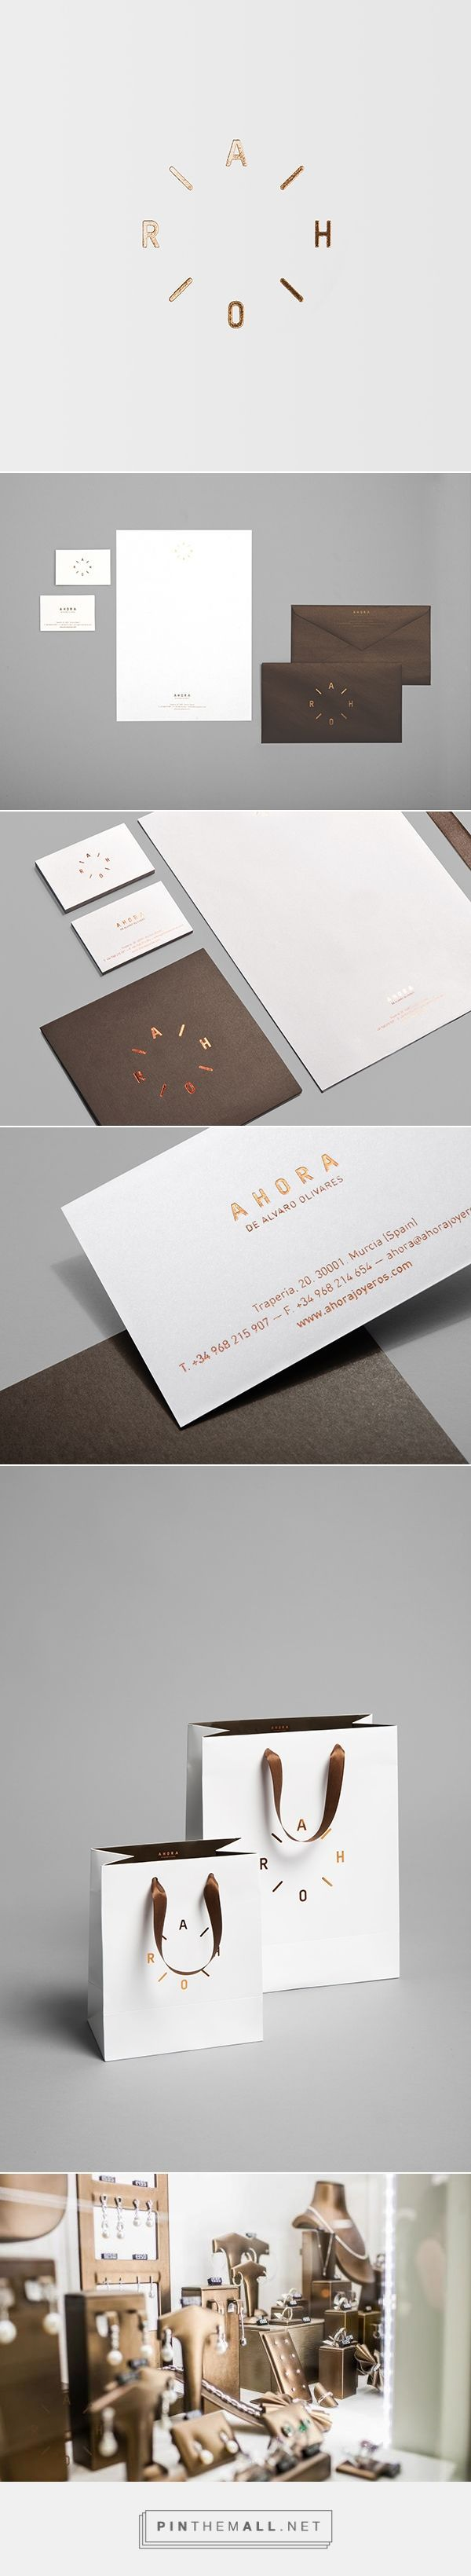 1694 best Branding Design images on Pinterest